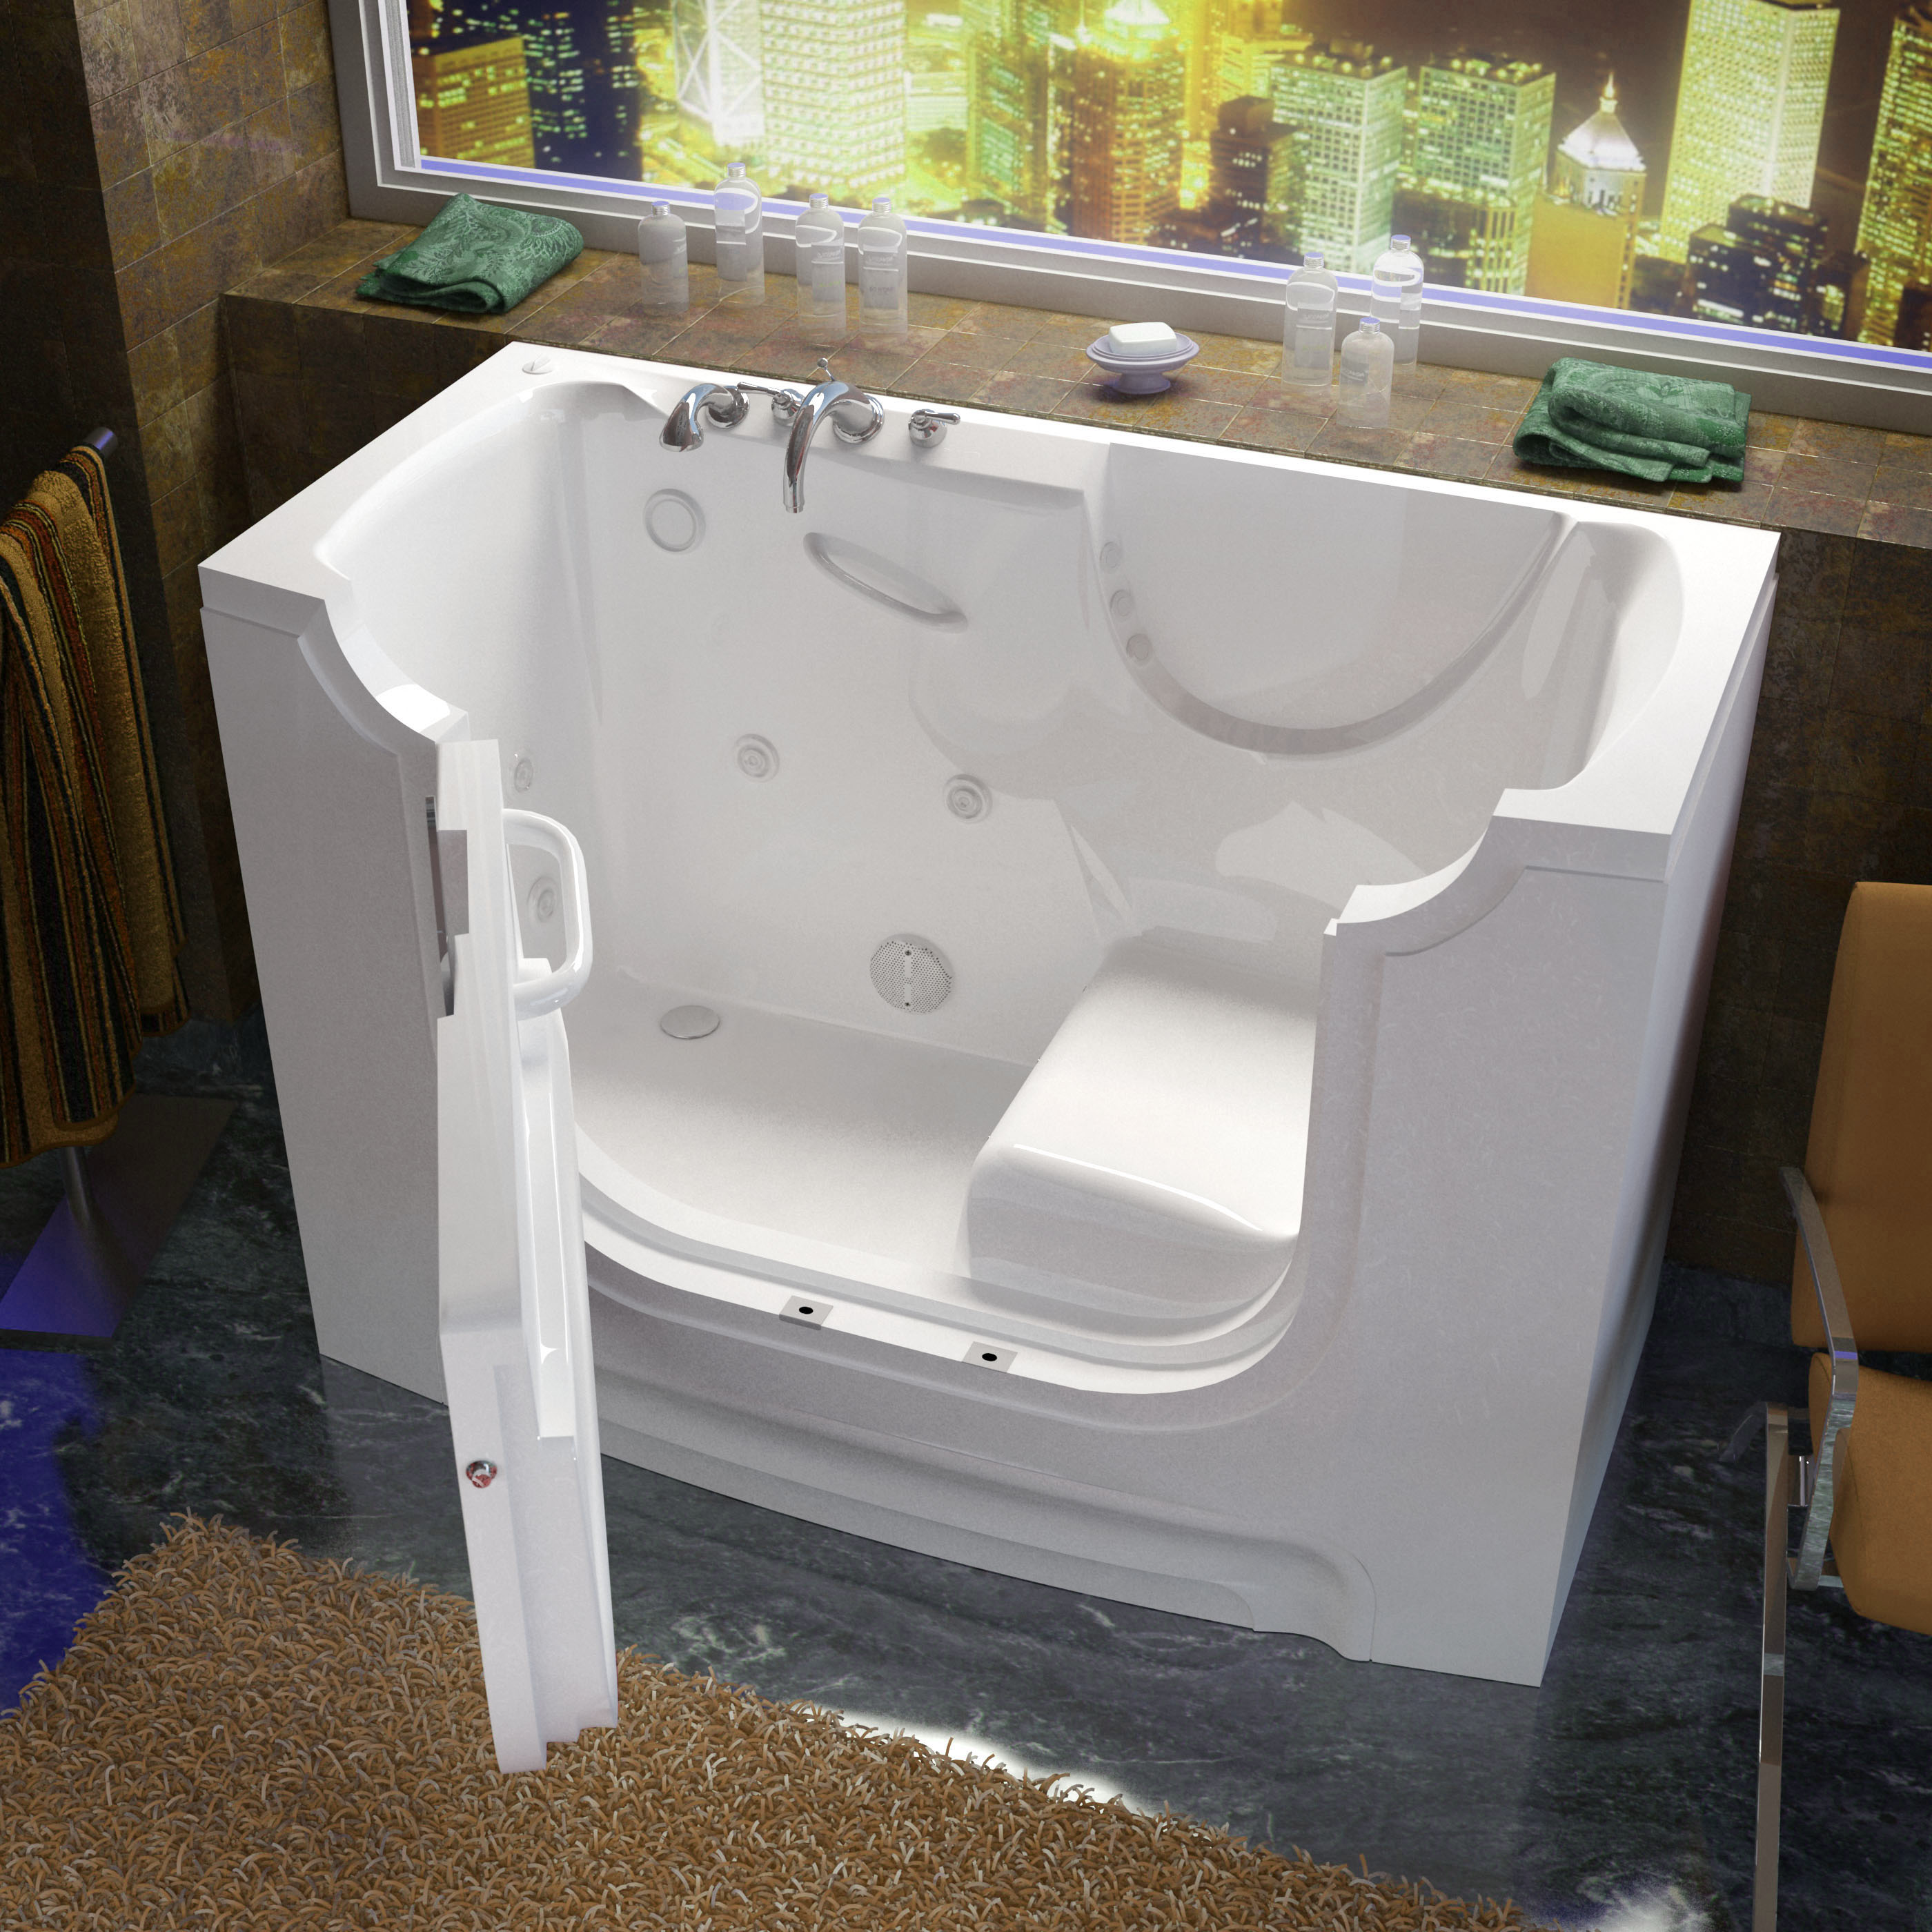 30x60 Left Drain White Whirlpool Jetted Wheelchair Accessible Walk-In Bathtub